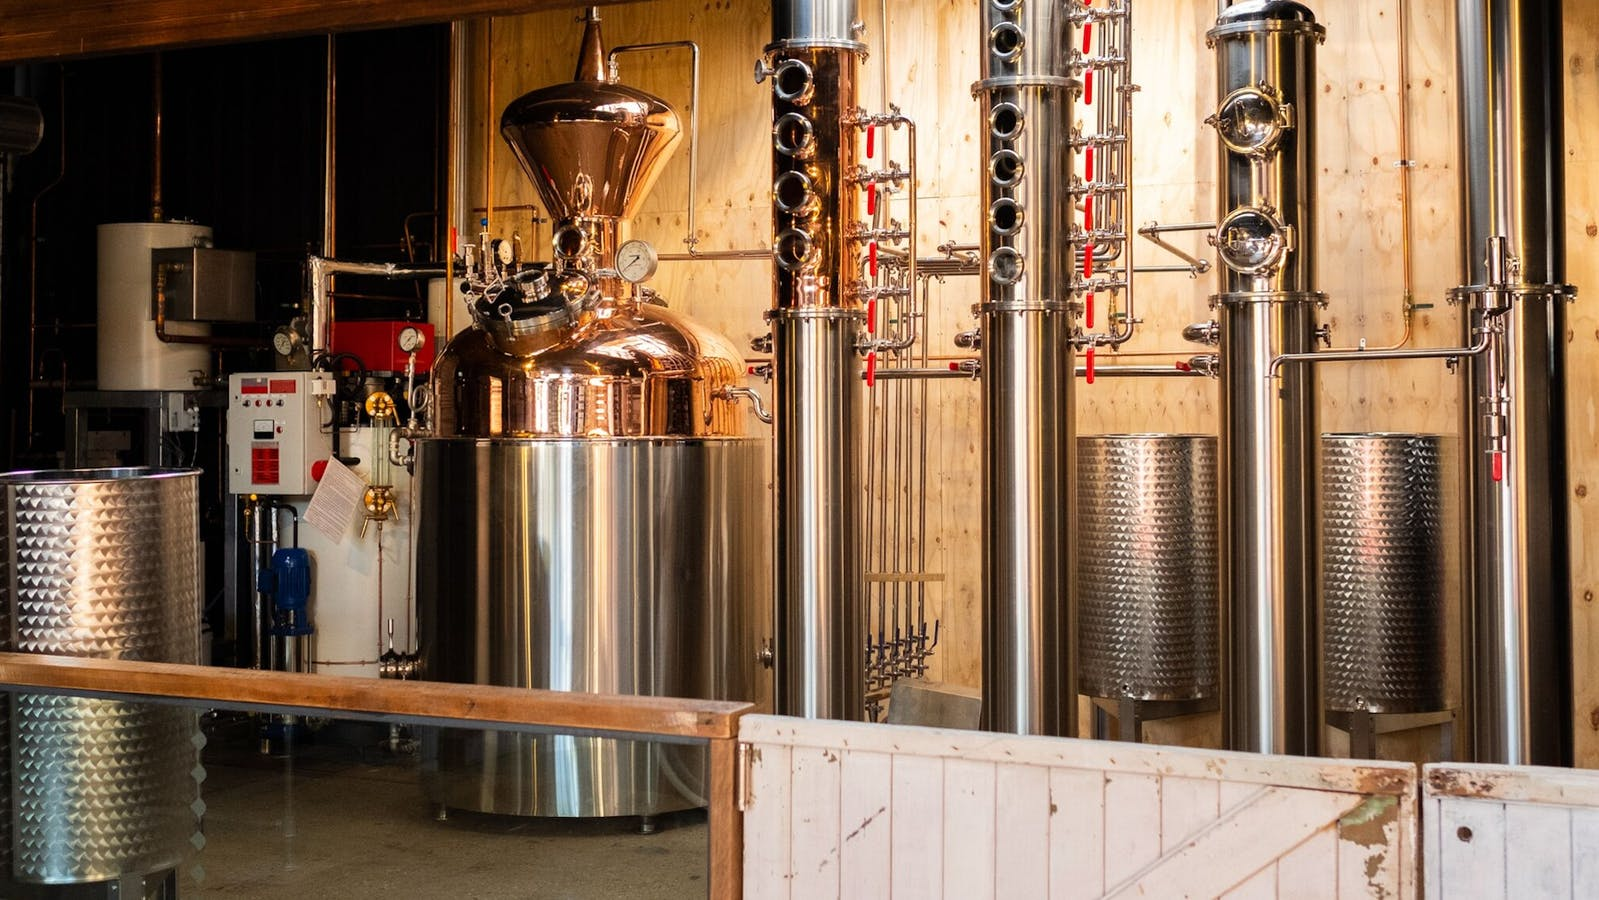 Location: Granddad Jacks Craft Distillery